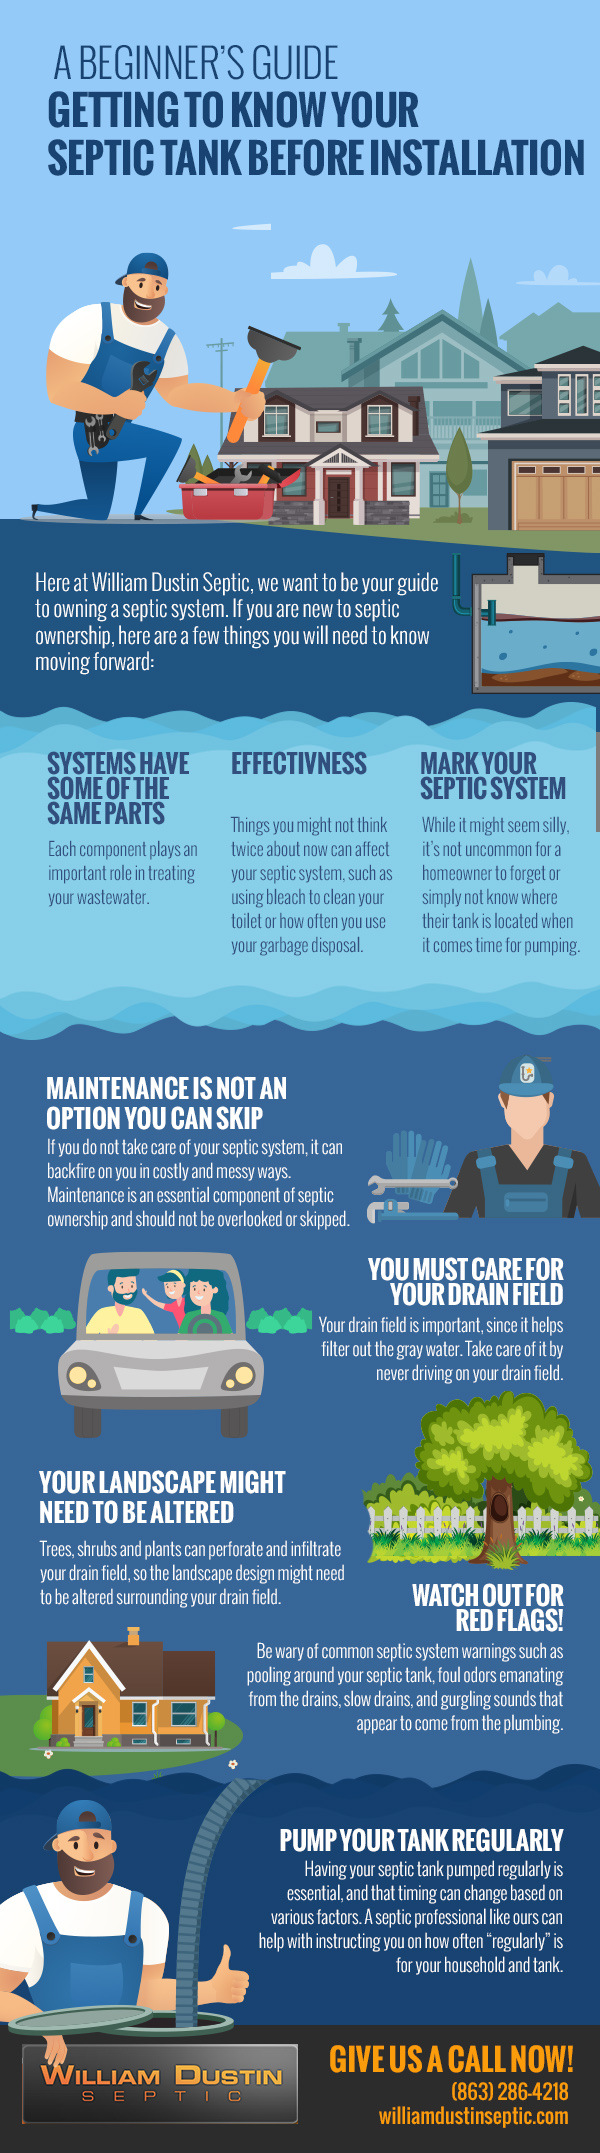 A Beginner's Guide: Getting to Know Your Septic Tank Before Installation [infographic]